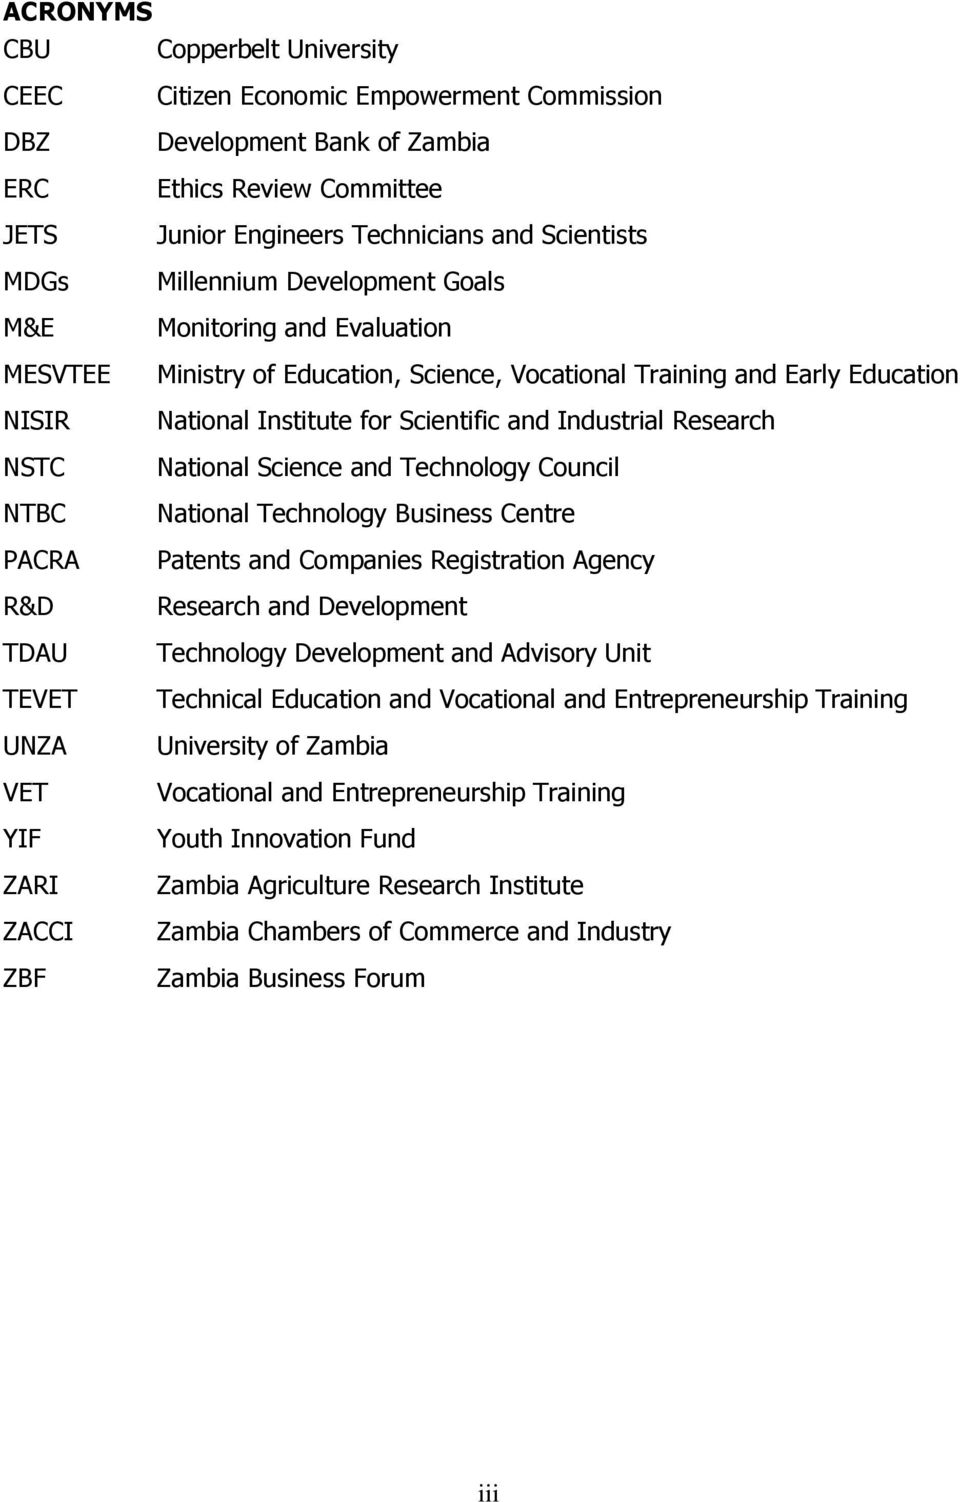 Education National Institute for Scientific and Industrial Research National Science and Technology Council National Technology Business Centre Patents and Companies Registration Agency Research and